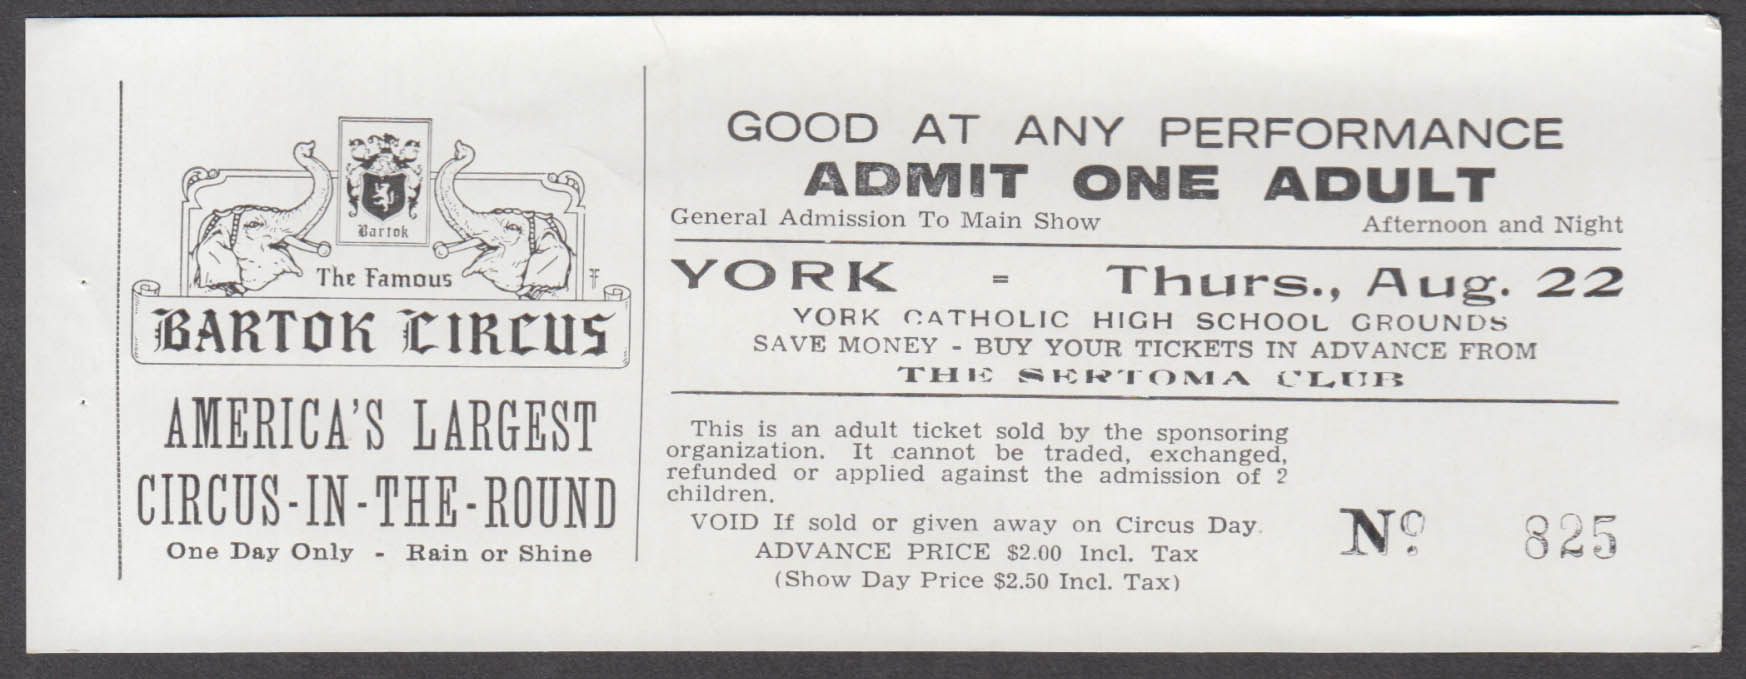 Bartok Circus-in-the-Round Adult $2.00 circus ticket York Catholic High Grounds